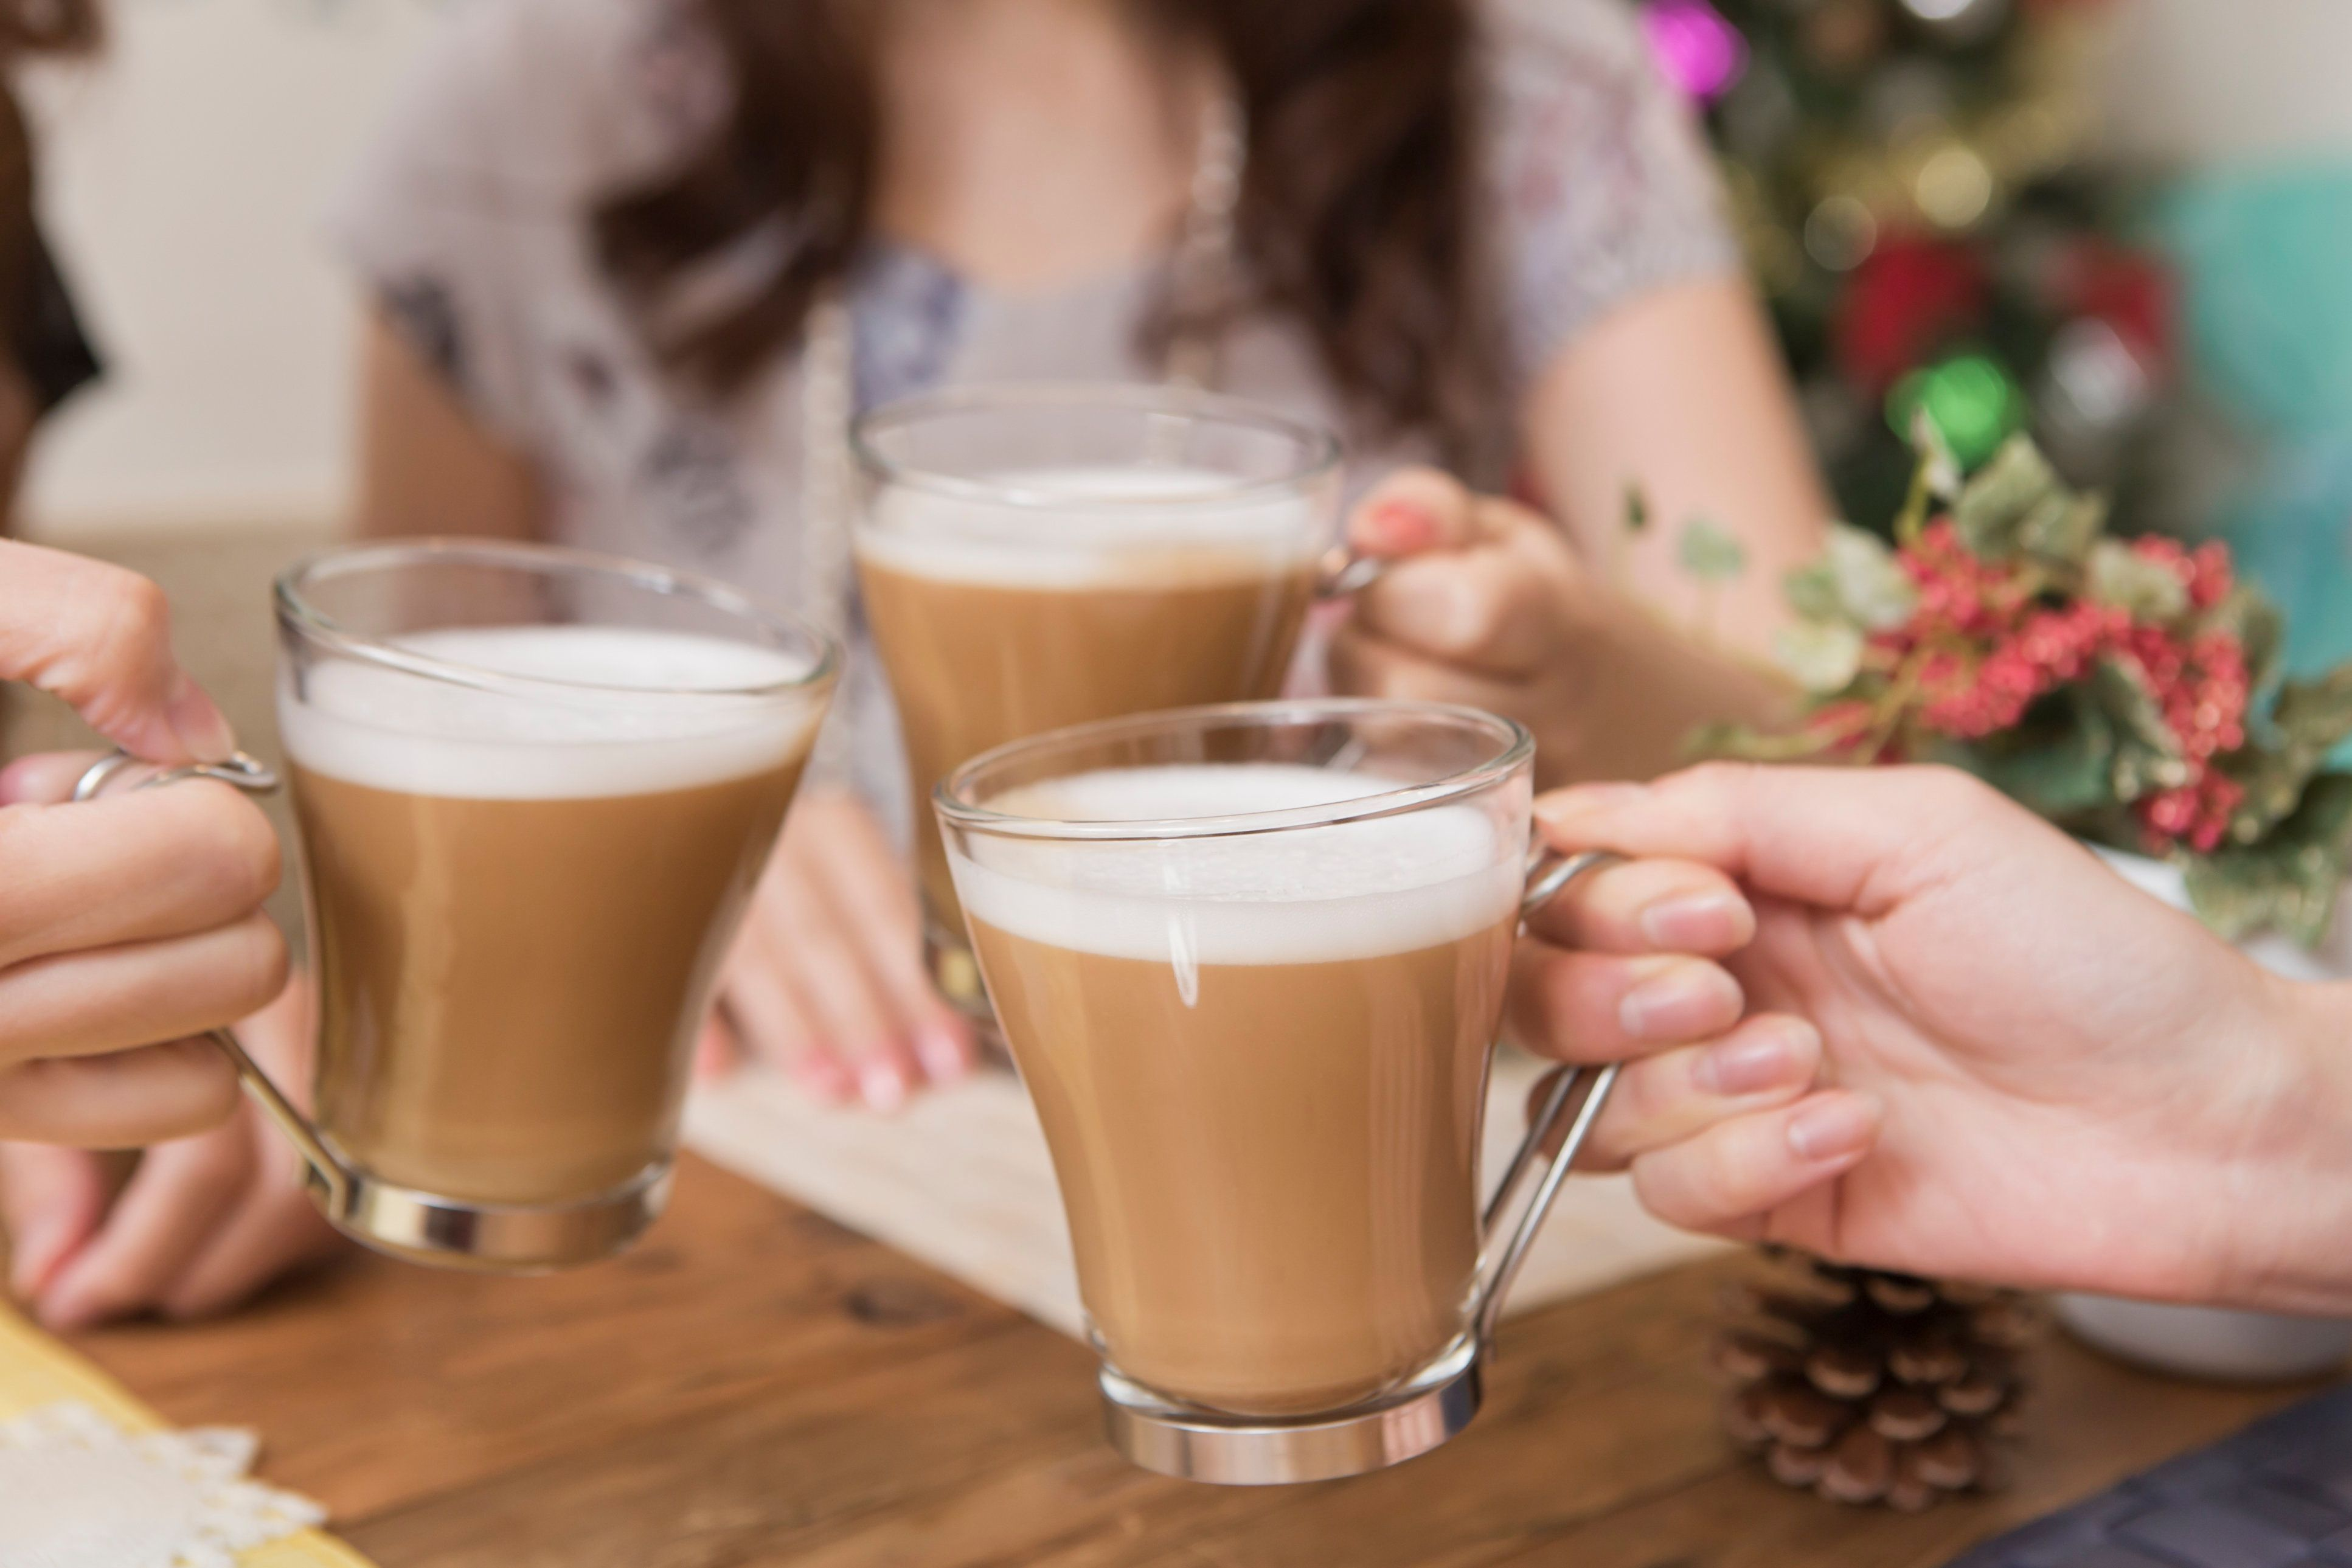 Instead of enjoying your morning coffee alone, why not round up the familyto share a latte with at your favorite bakery